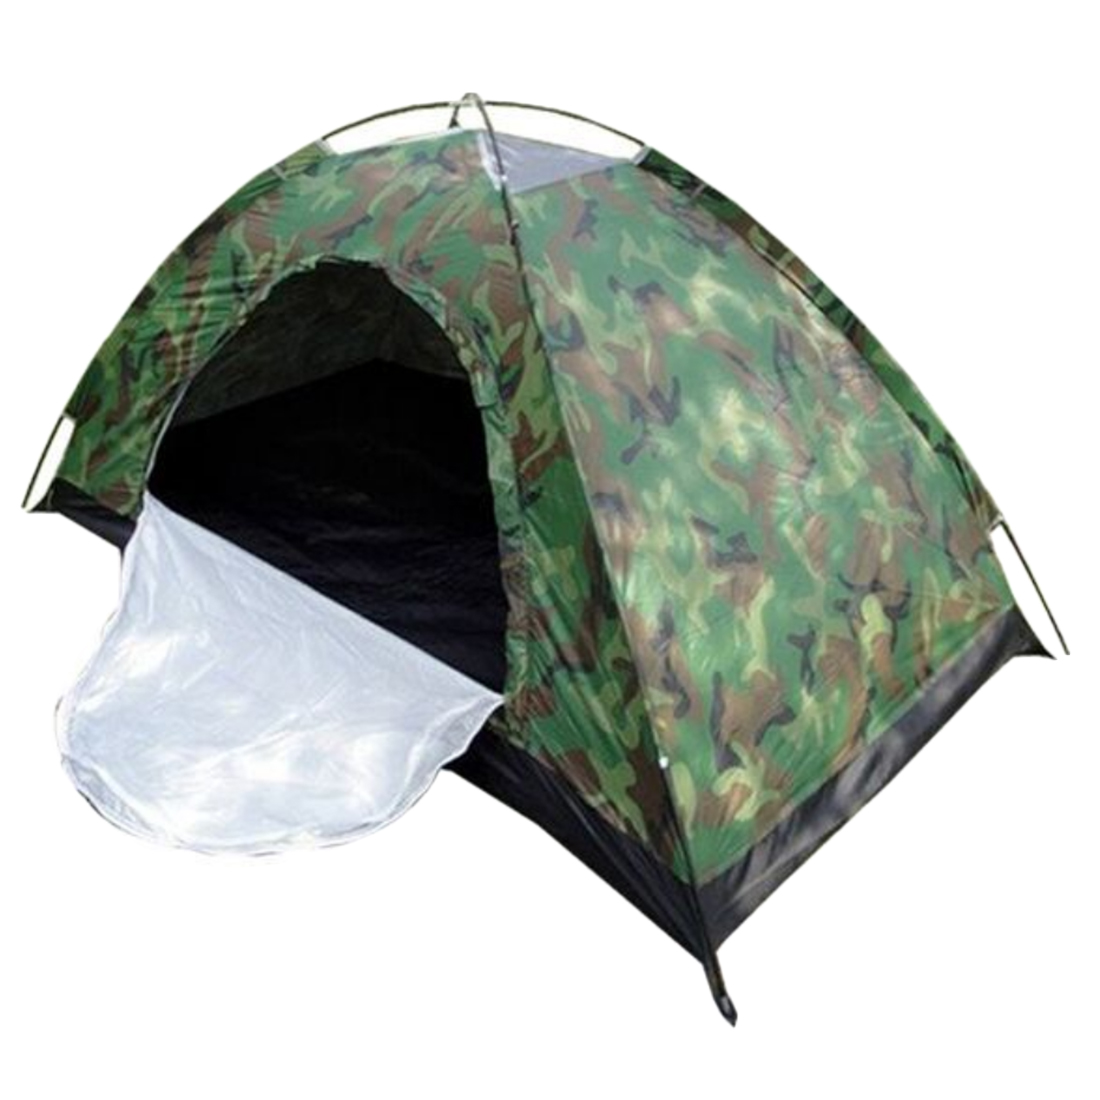 Single Person Camping Waterproof Tent Outdoor Hiking Tent Camouflage Net <br>